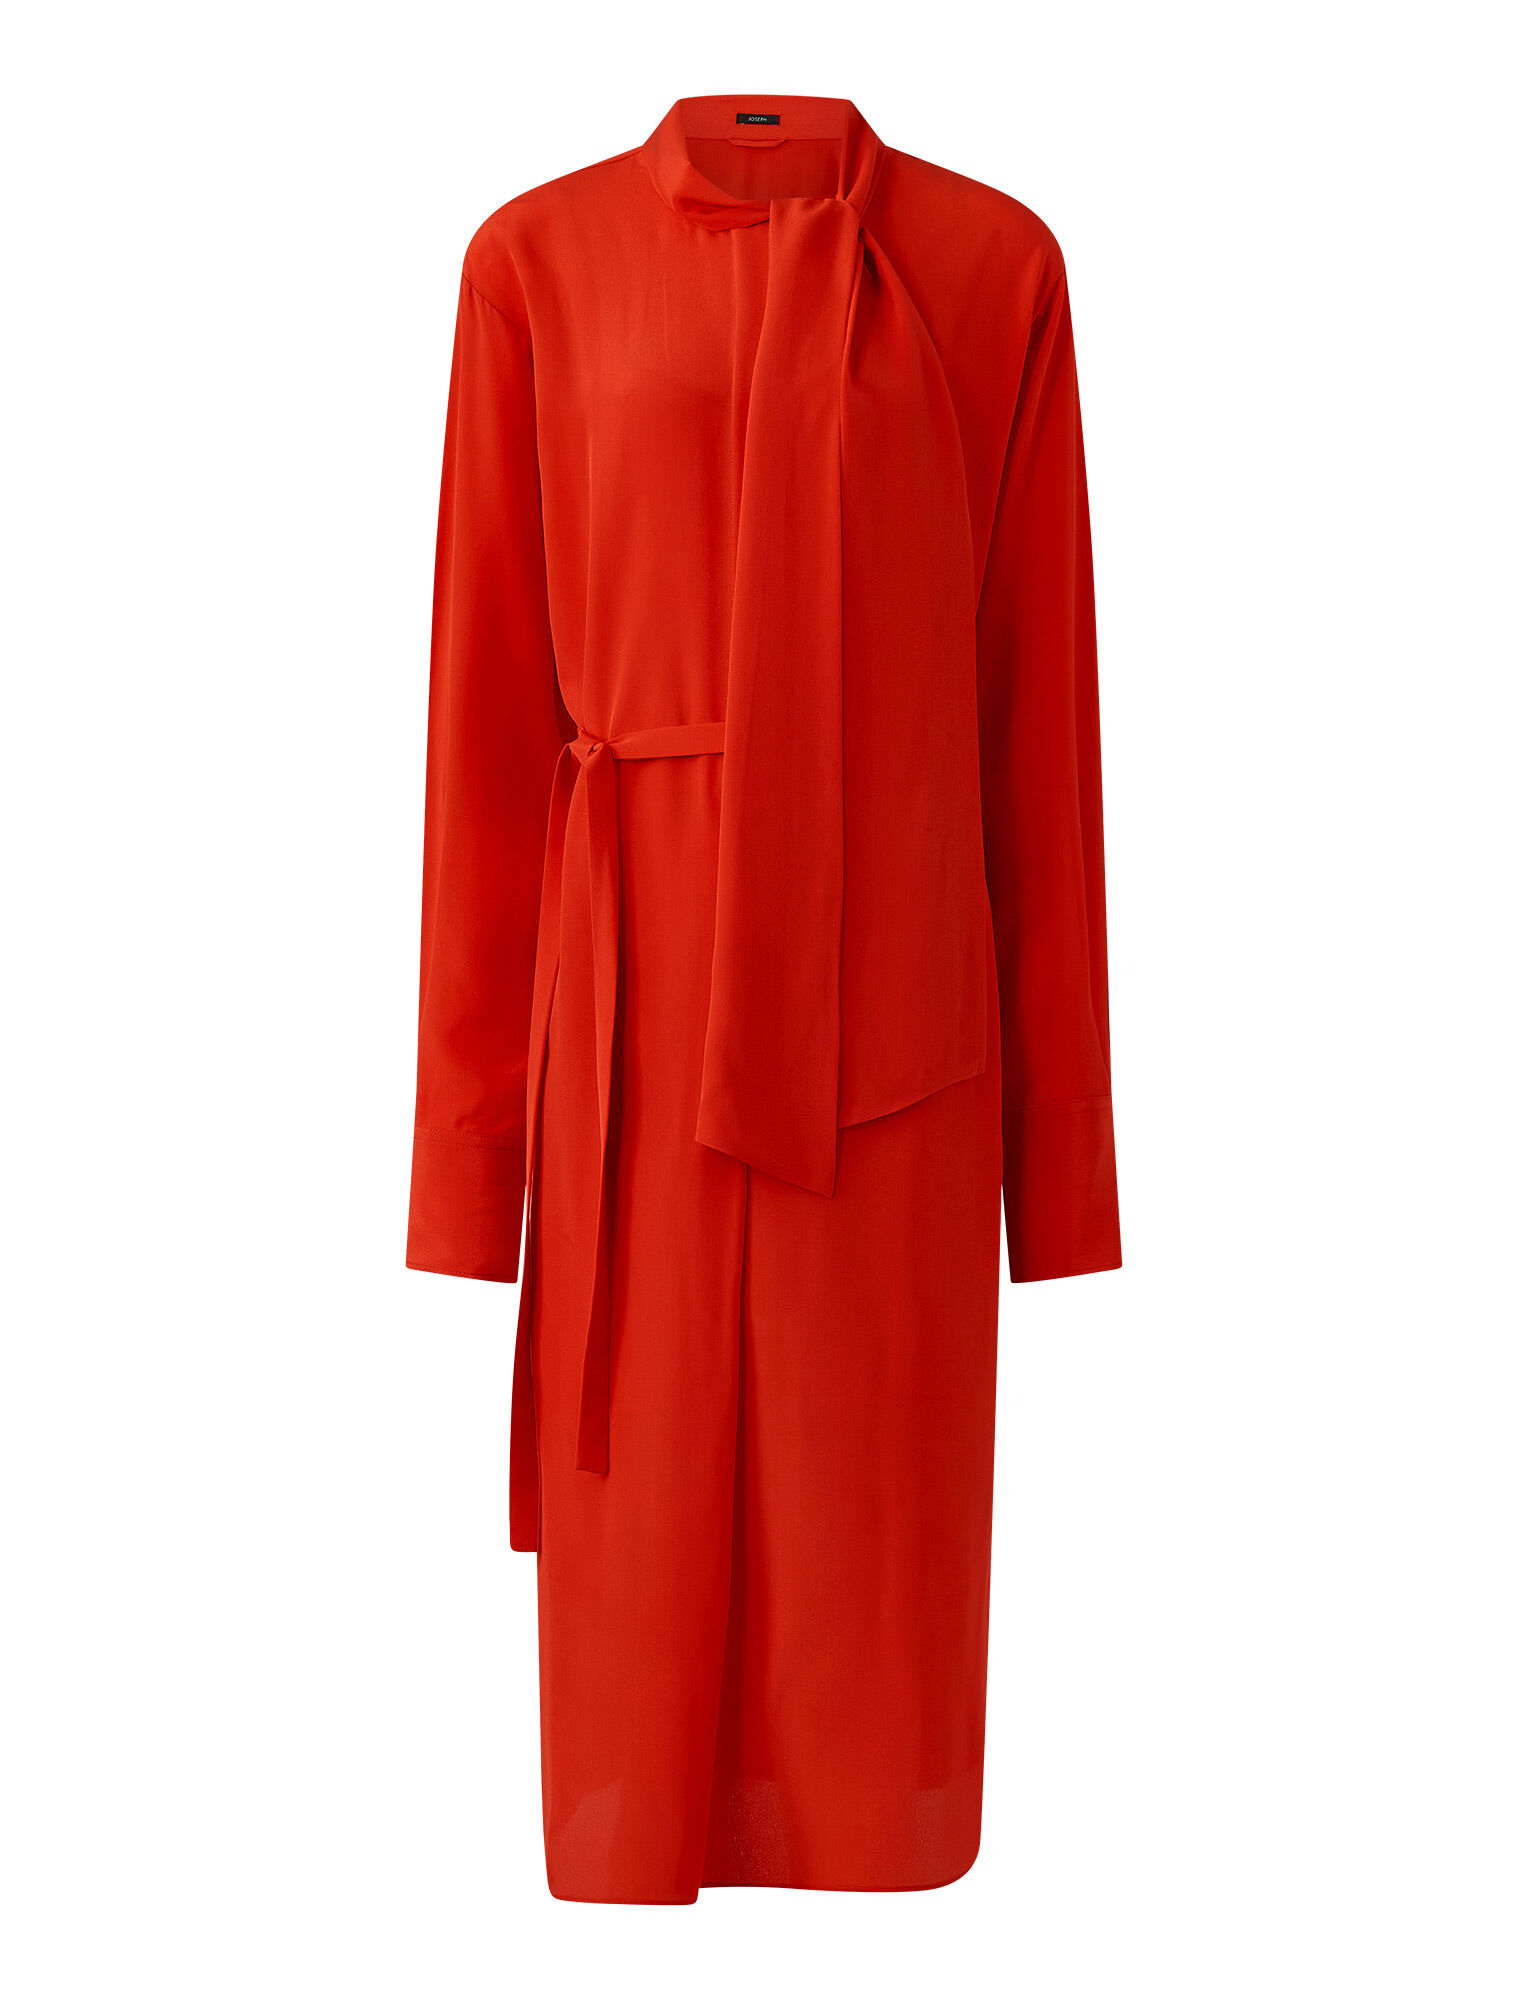 Joseph, Crepe de Chine Dorianne Dress, in FLAME